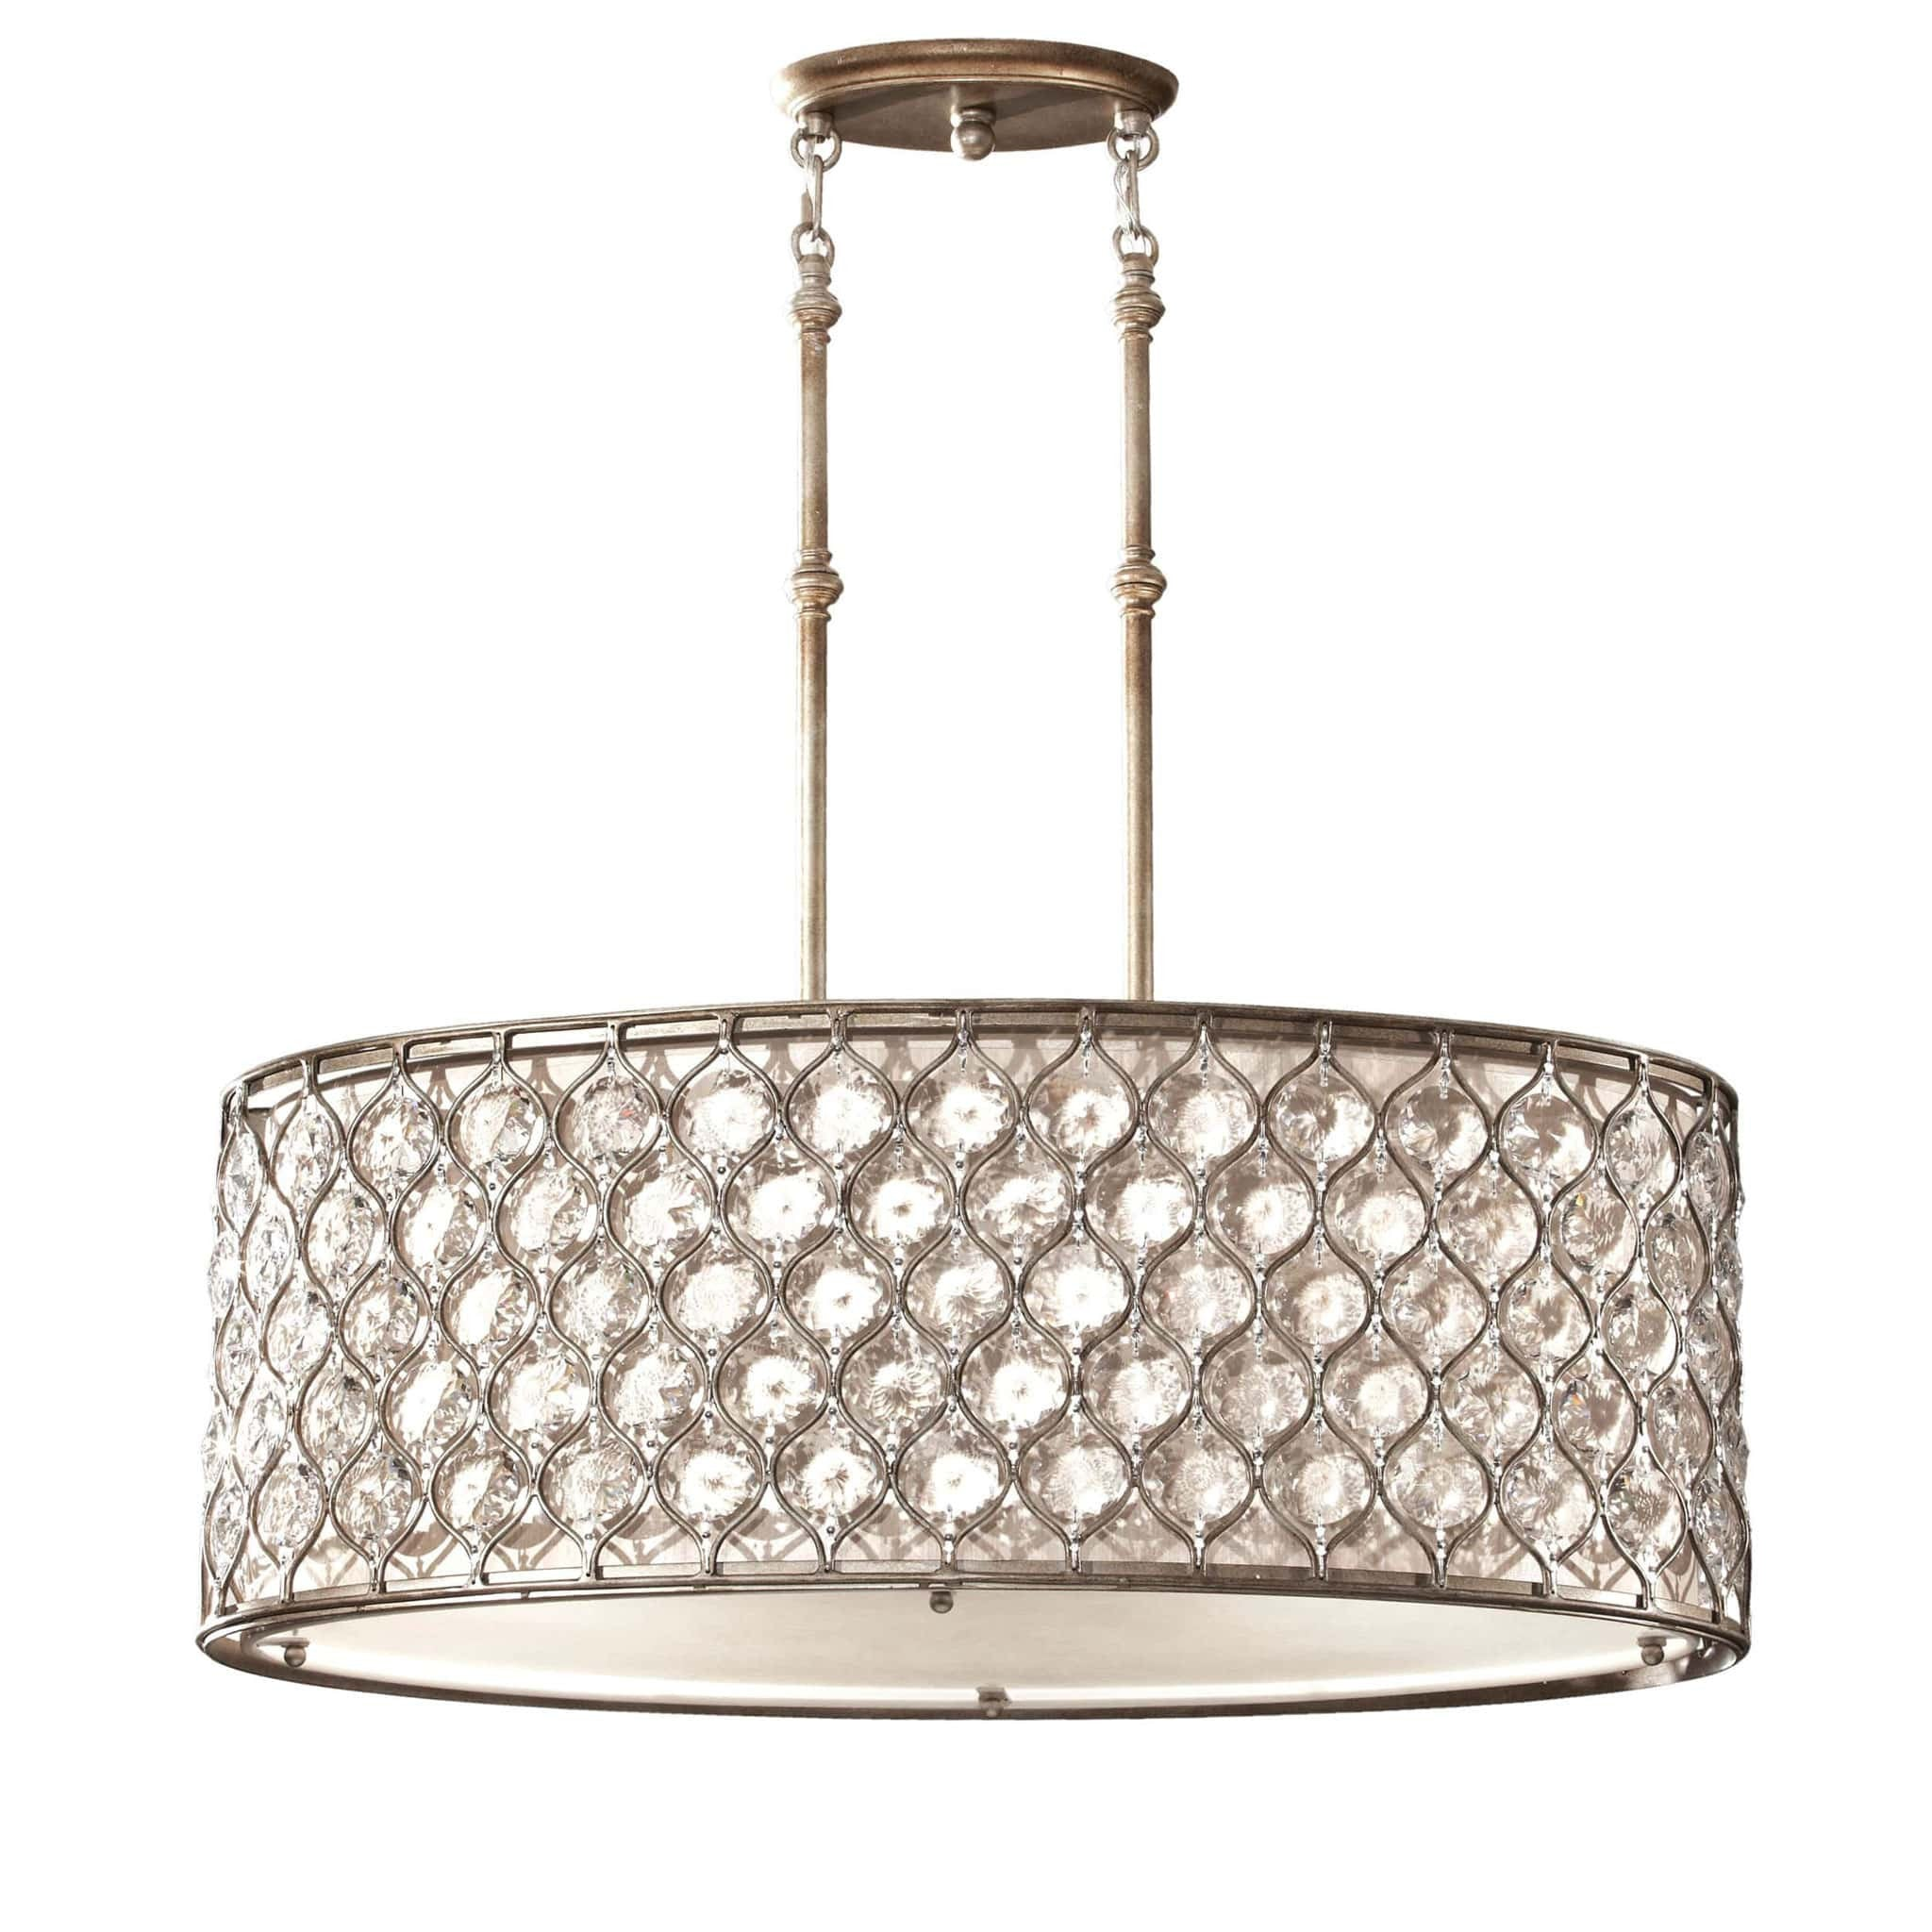 Feiss Lucia 3 Light Burnished Silver Oval Chandelier FE/LUCIA/P/A ...